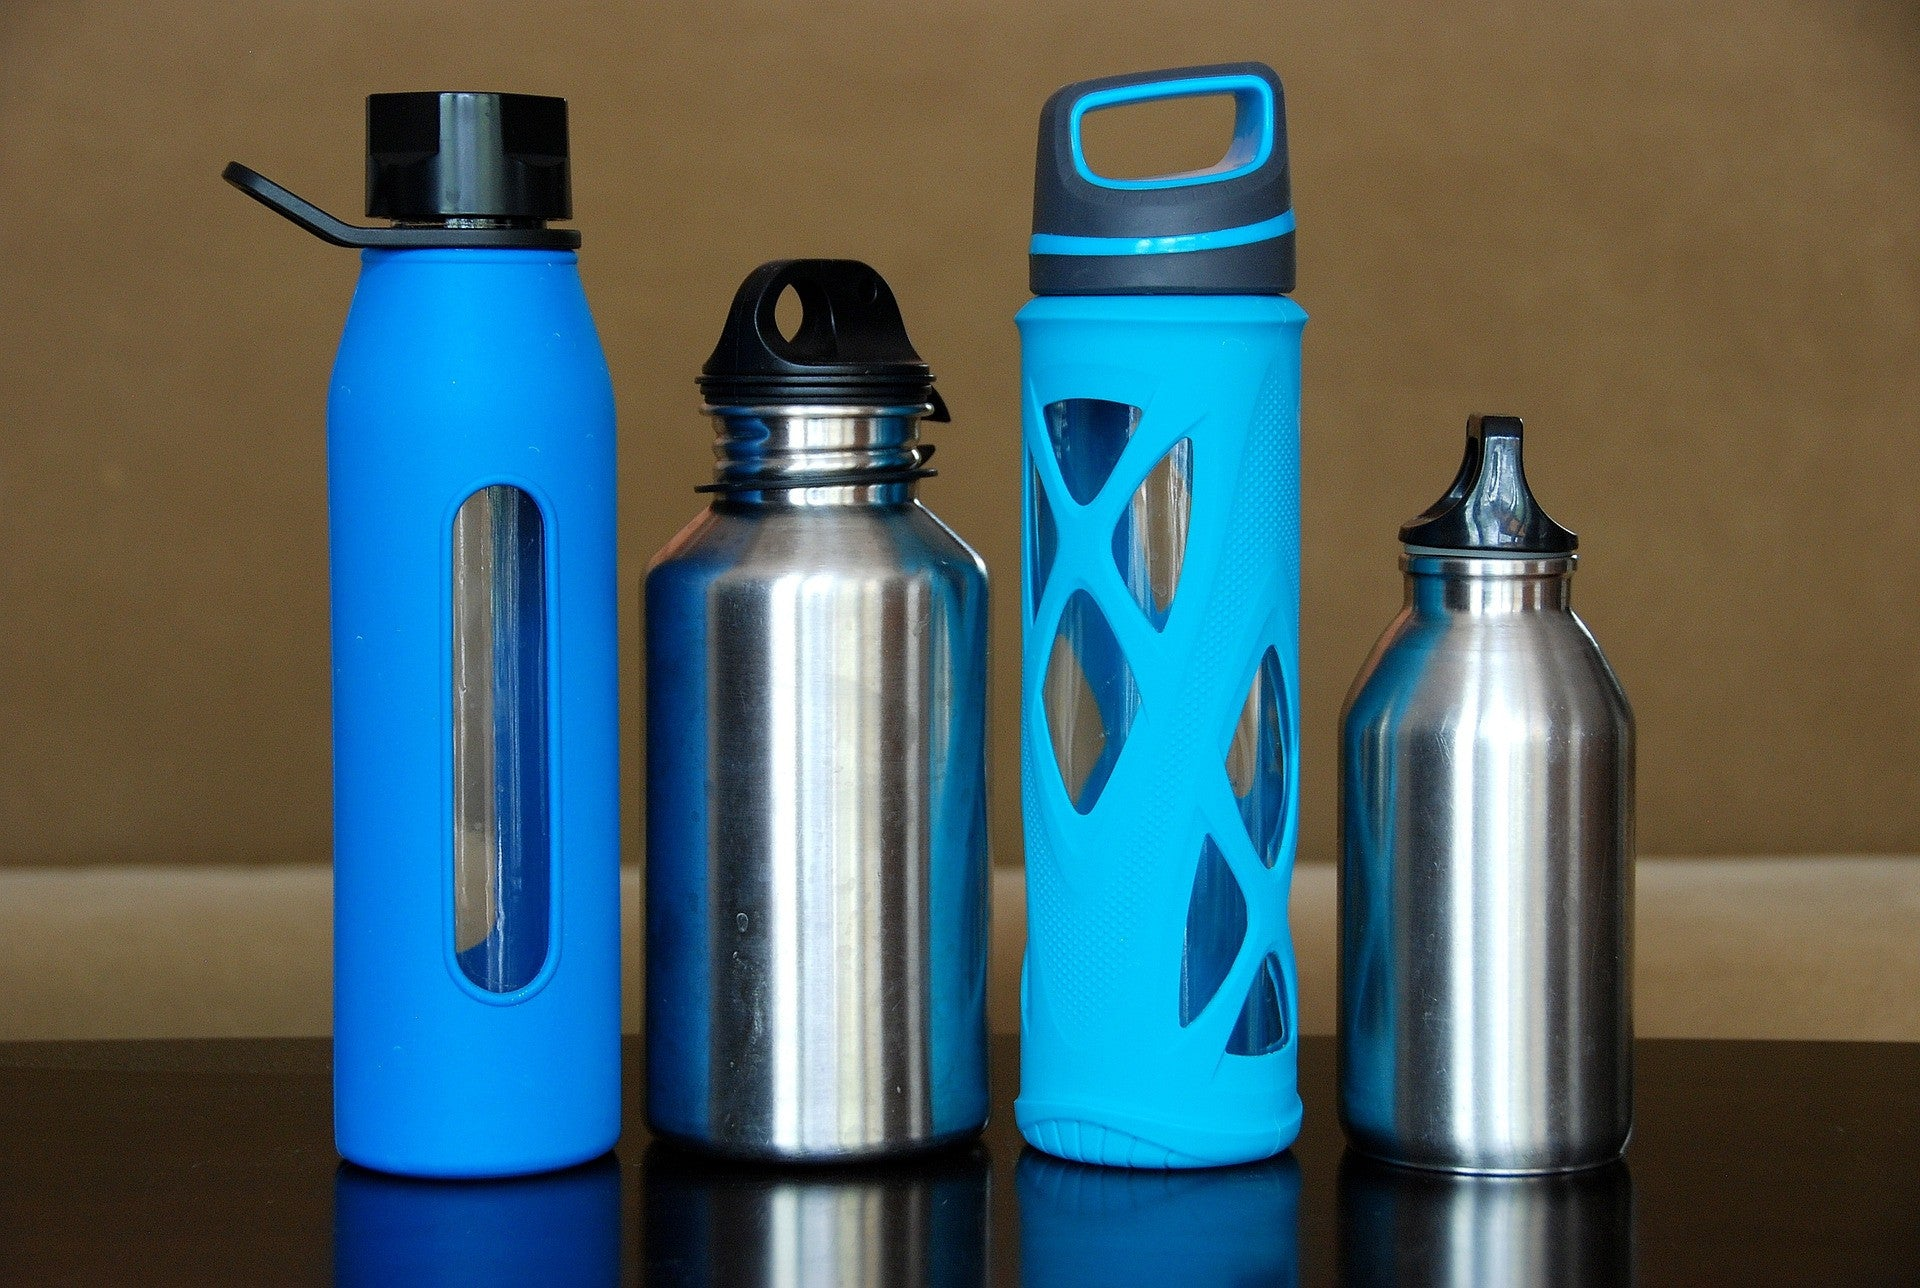 Supplement Wisely: The Top 3 Shaker Bottles in the Industry